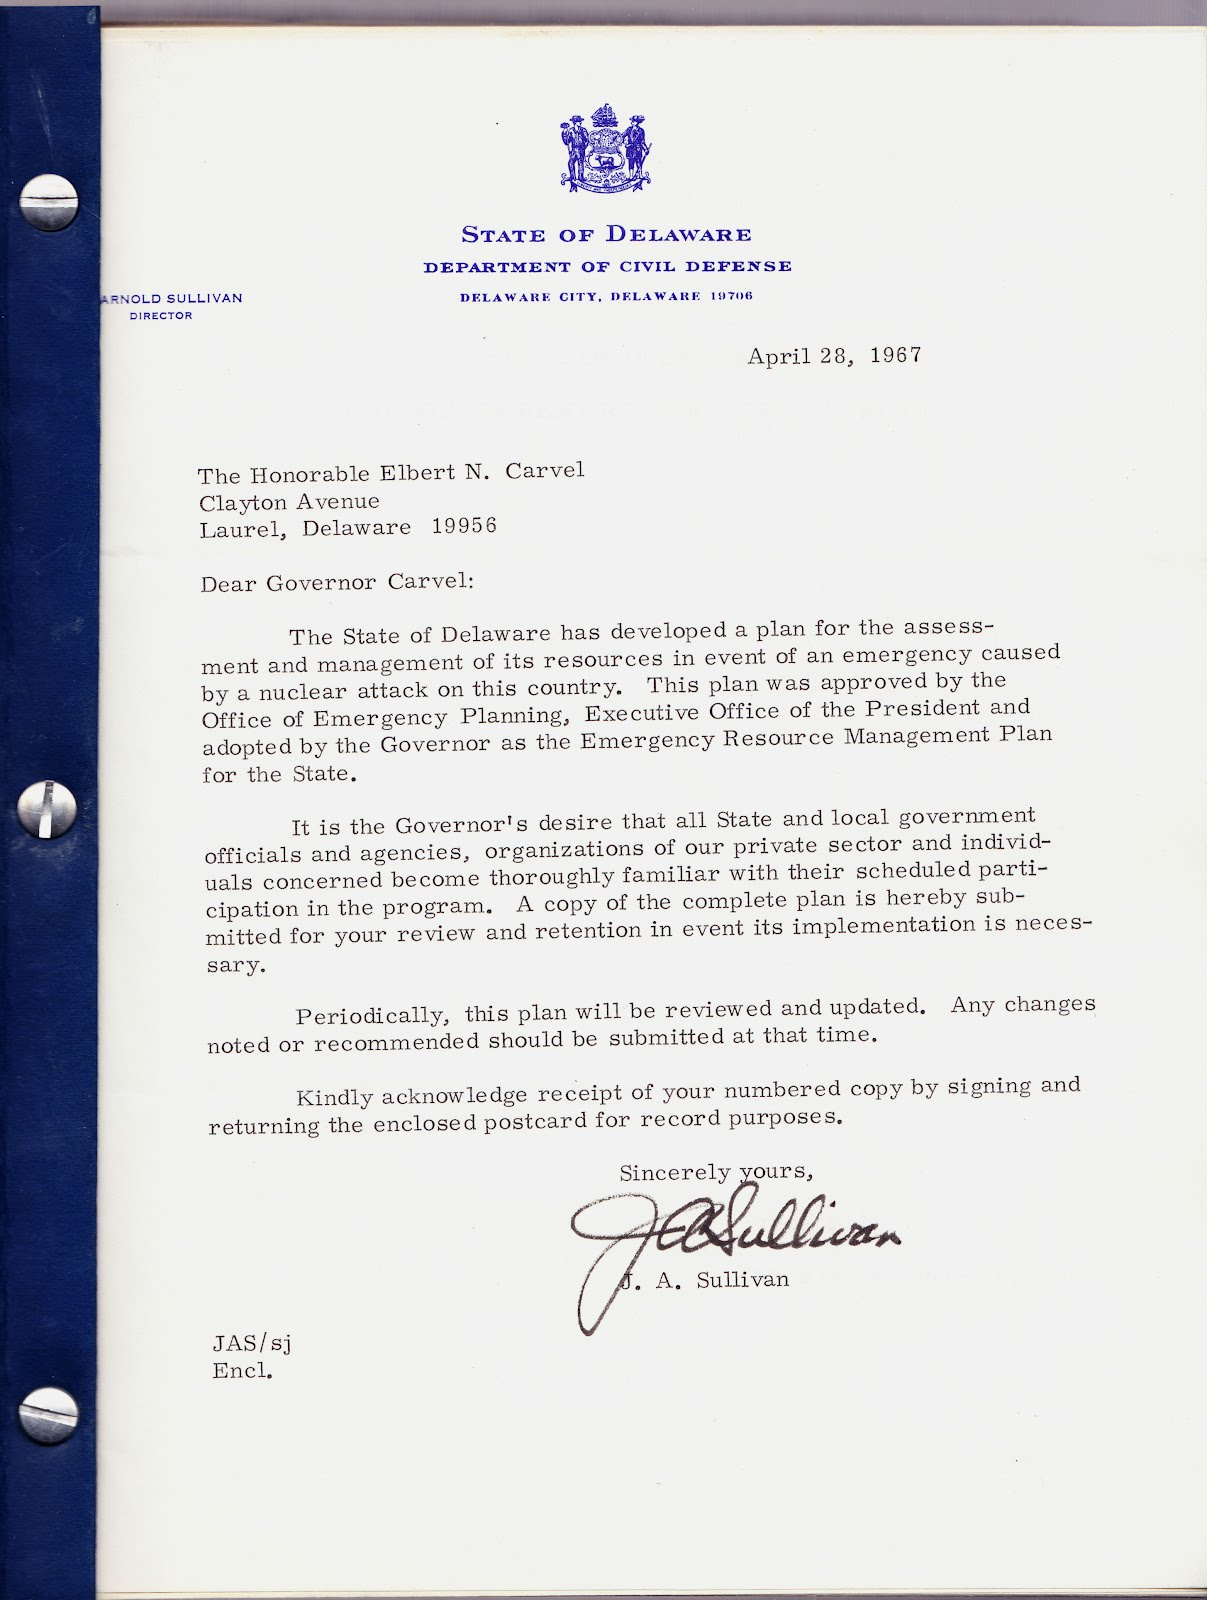 Official Government Letter Format http://www.papergreat.com/2012_03_18 ...